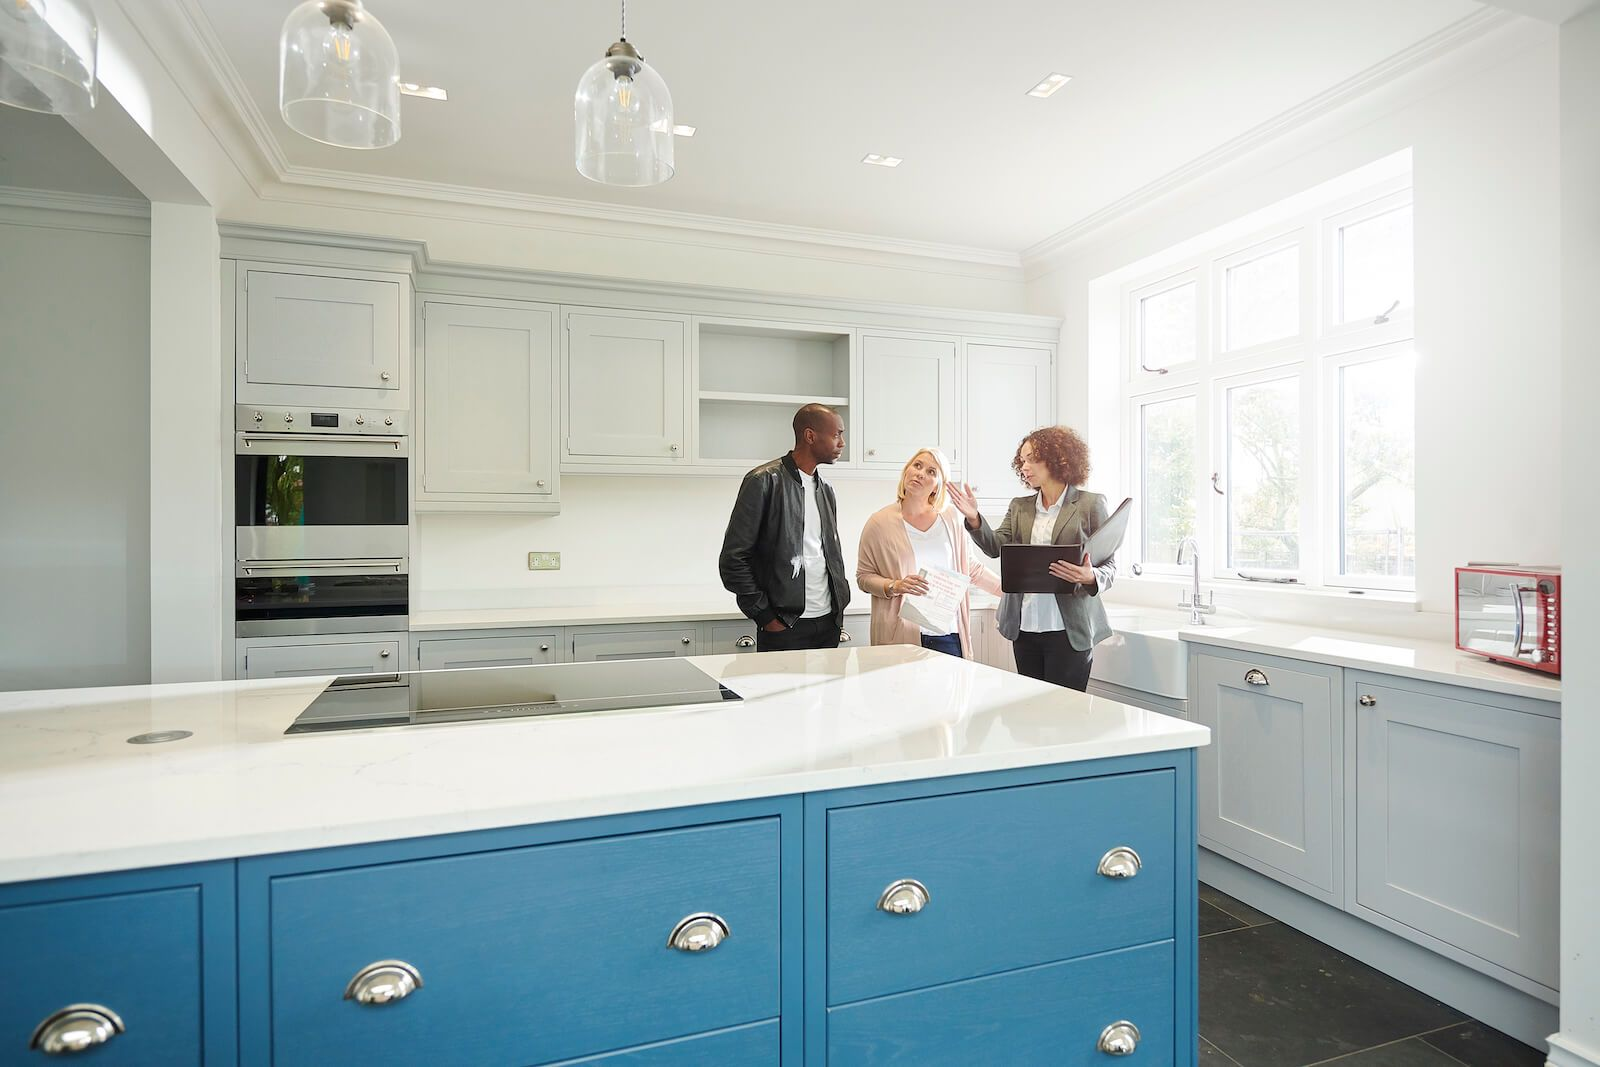 What to Look for in a Rental Property Listing and Viewing